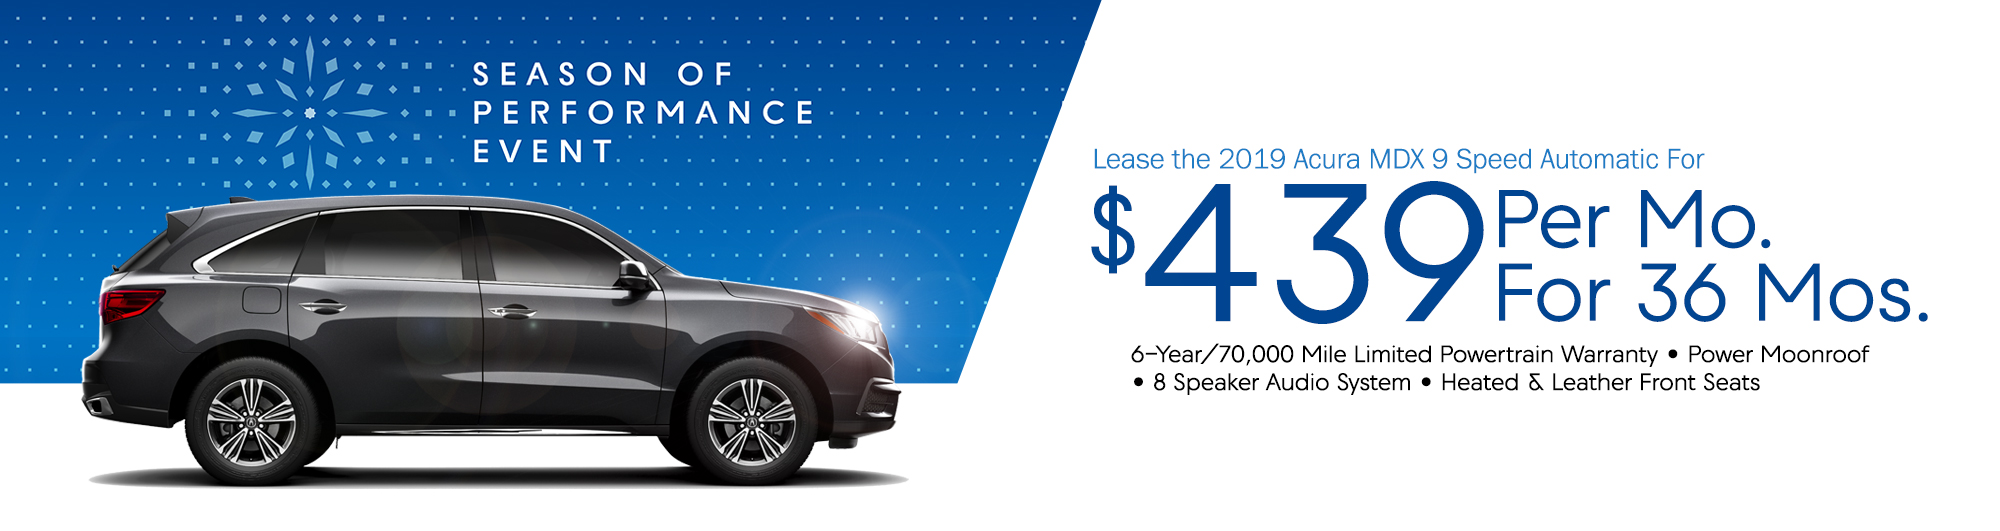 Lease the 2019 Acura MDX 9 Speed Automatic For $439 Per Month For 36 Months. Features: 6-Year/70,000 Mile Limited Powertrain Warranty • Power Moonroof • 8 Speaker Audio System • Heated & Leather Front Seats